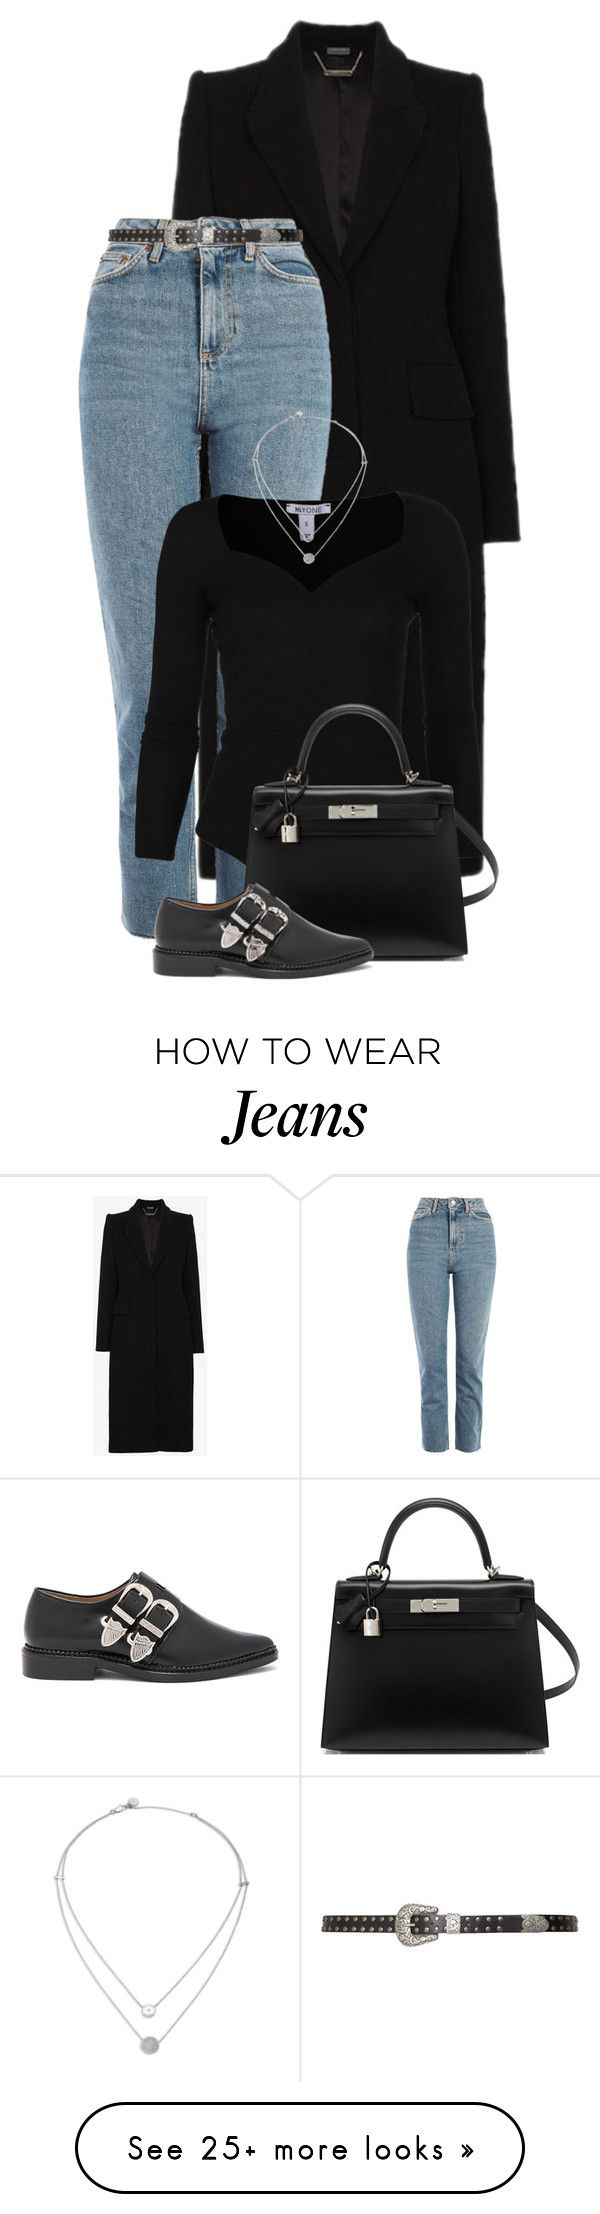 """Untitled #2441"" by lullilia on Polyvore featuring Alexander McQueen, Topshop, Zizzi, Hermès, Toga and Michael Kors"